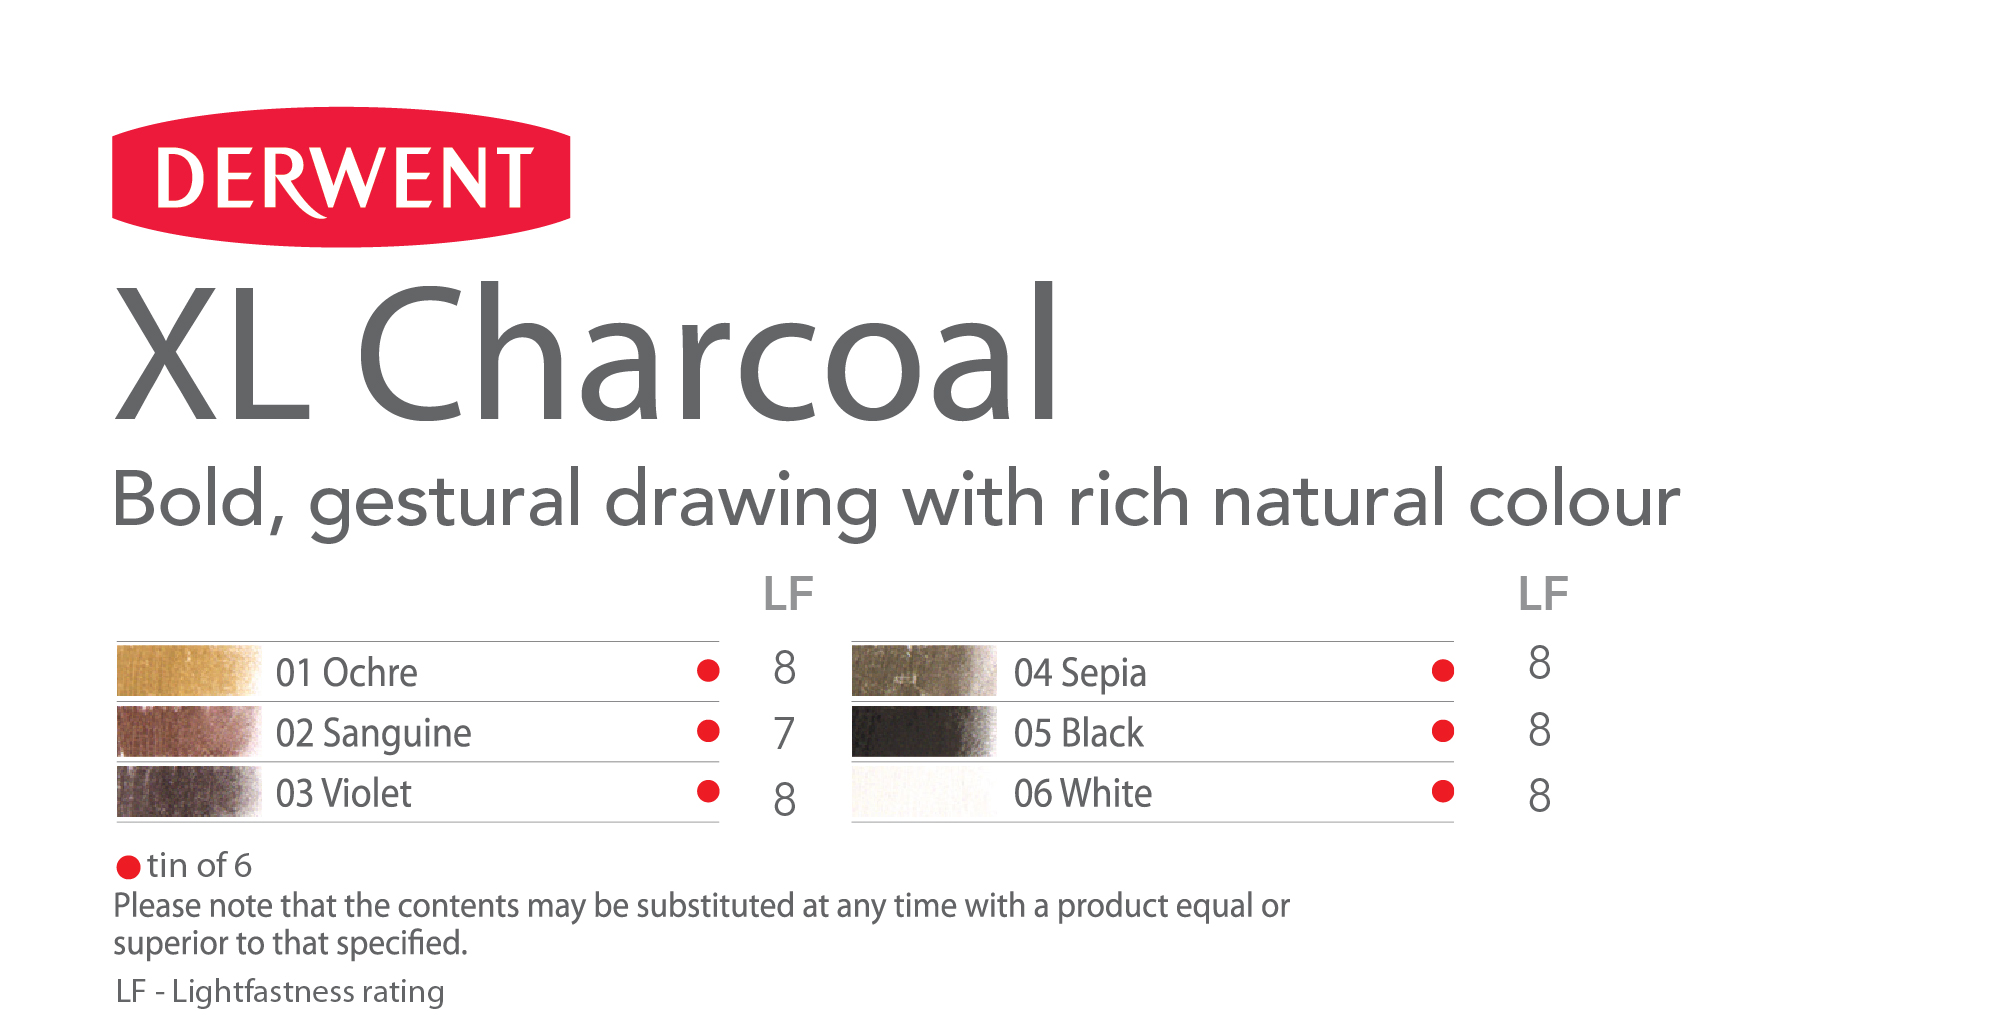 Derwent Xl Charcoal Block Sepia